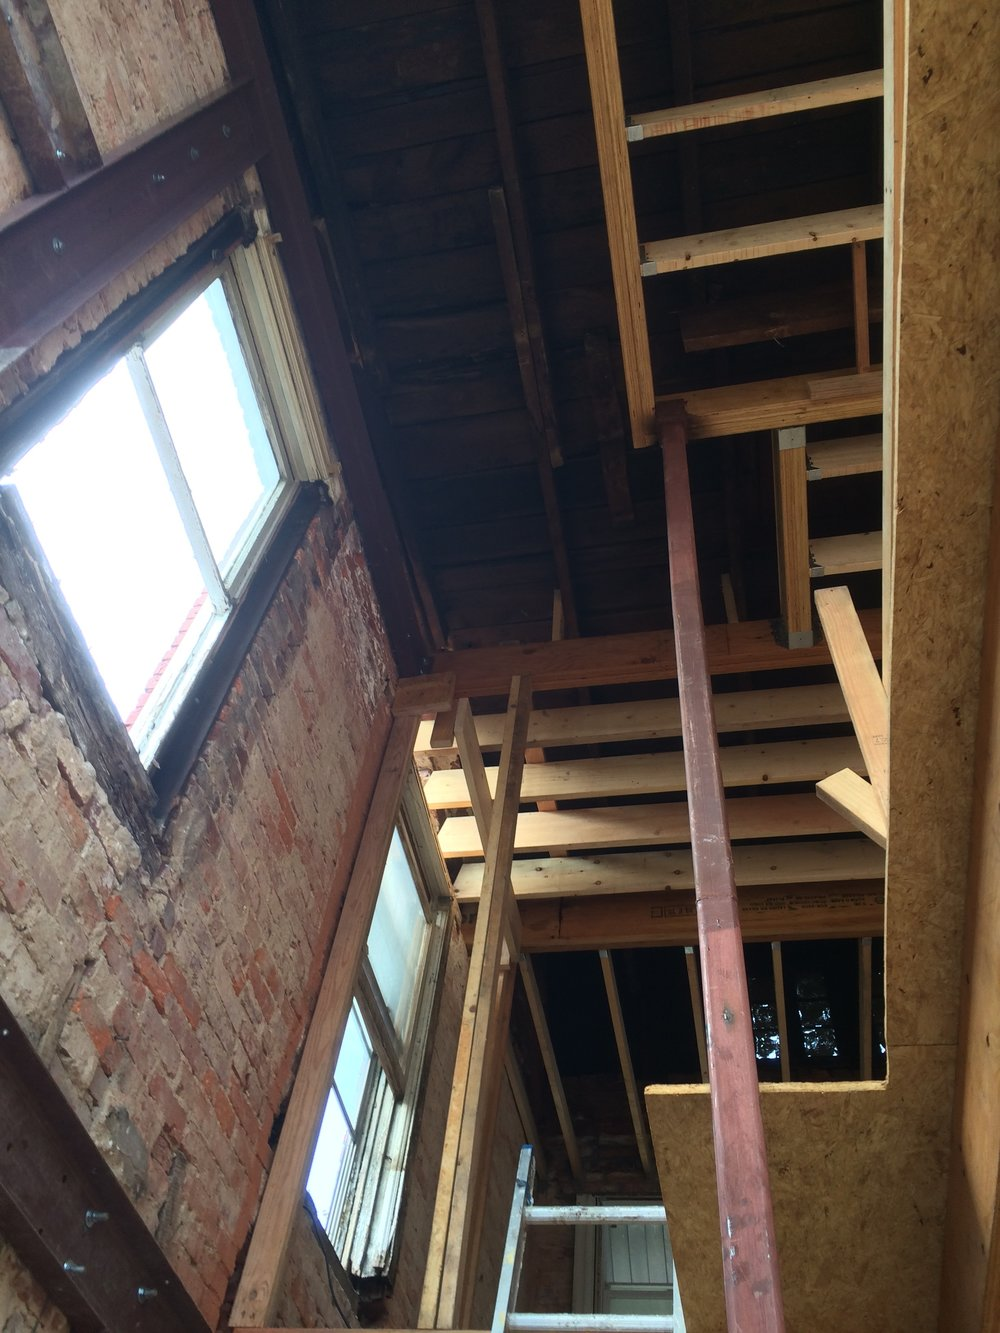 A view of the newly re-framed upper floors (looking up from the 1st floor)